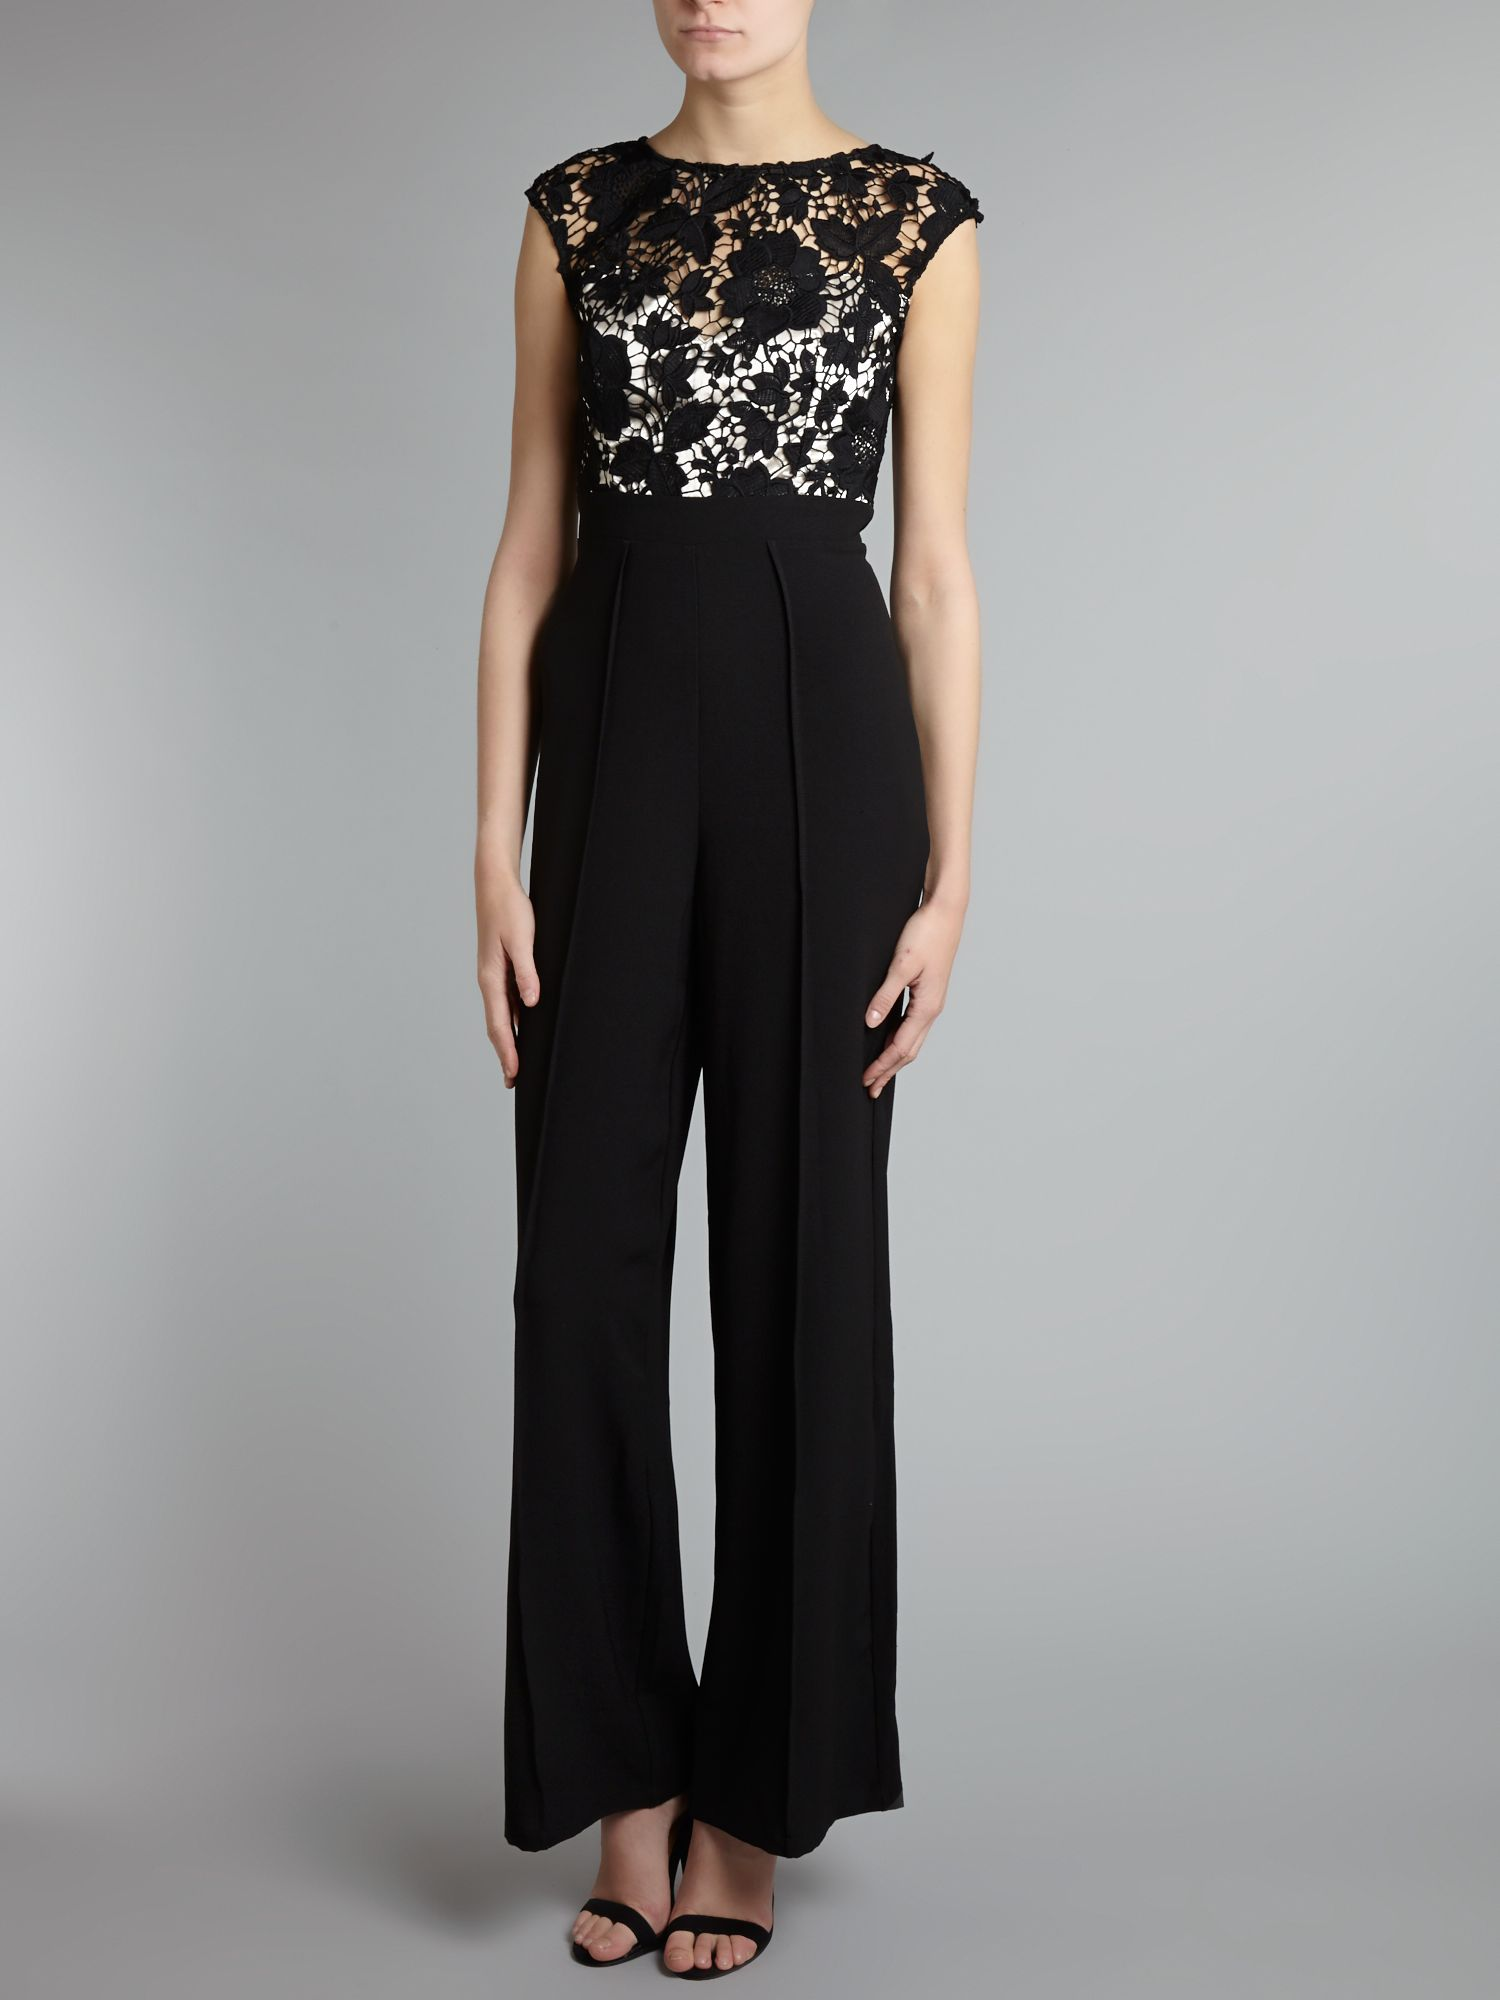 Lipsy Lace Top Jumpsuit In Black | Lyst